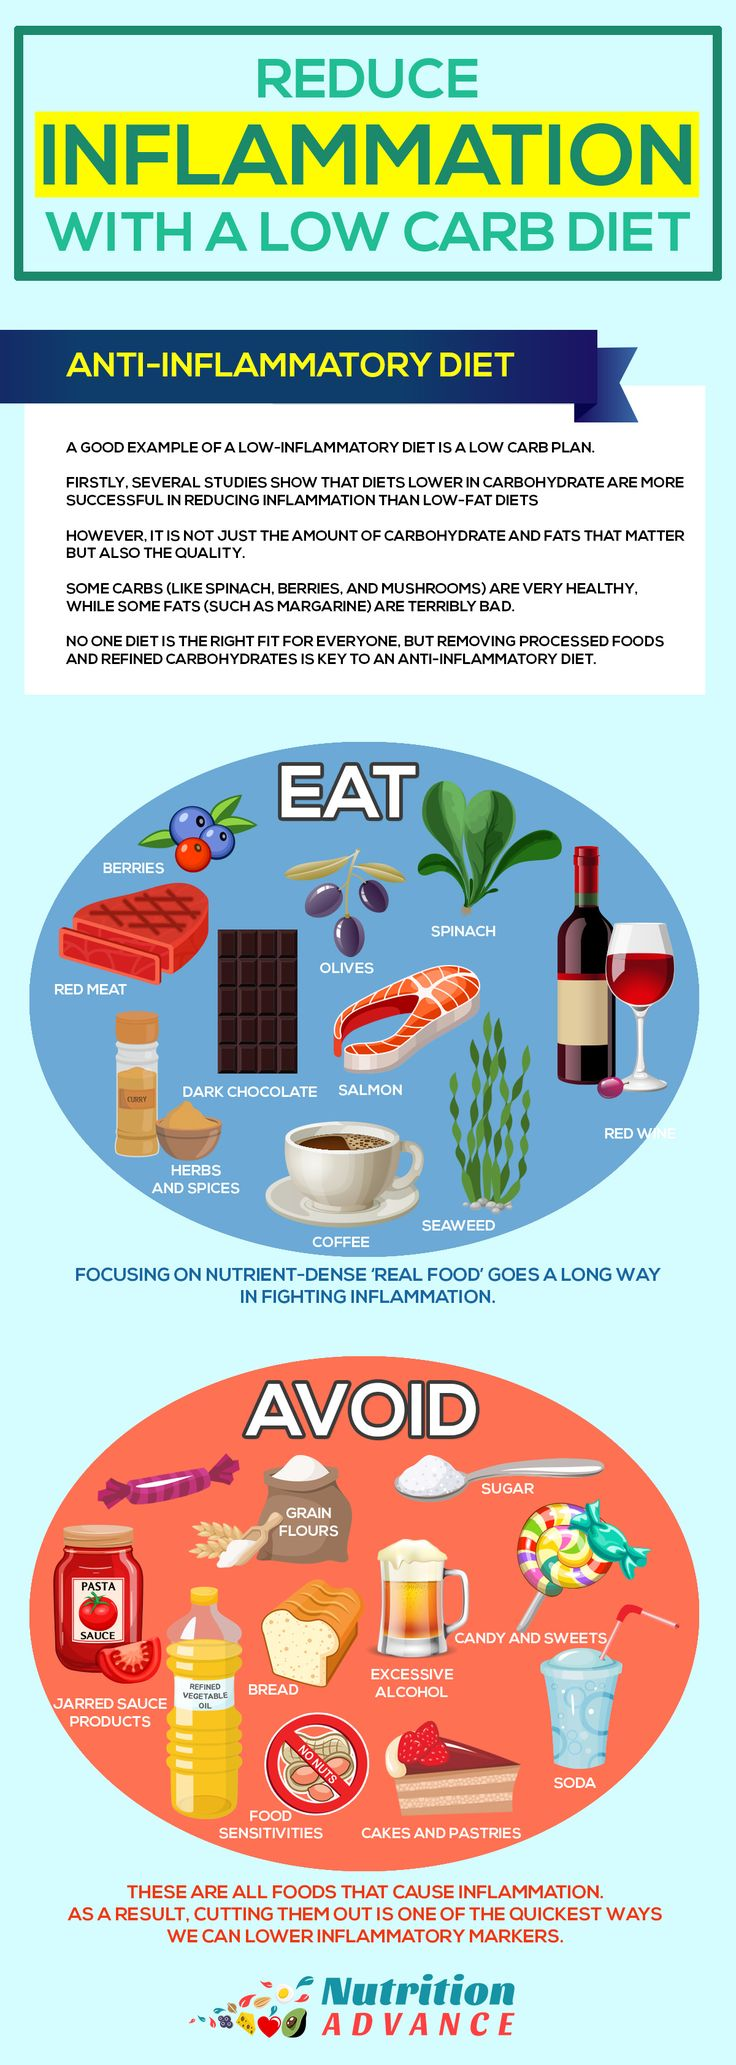 How to Stick to a No Starch Diet